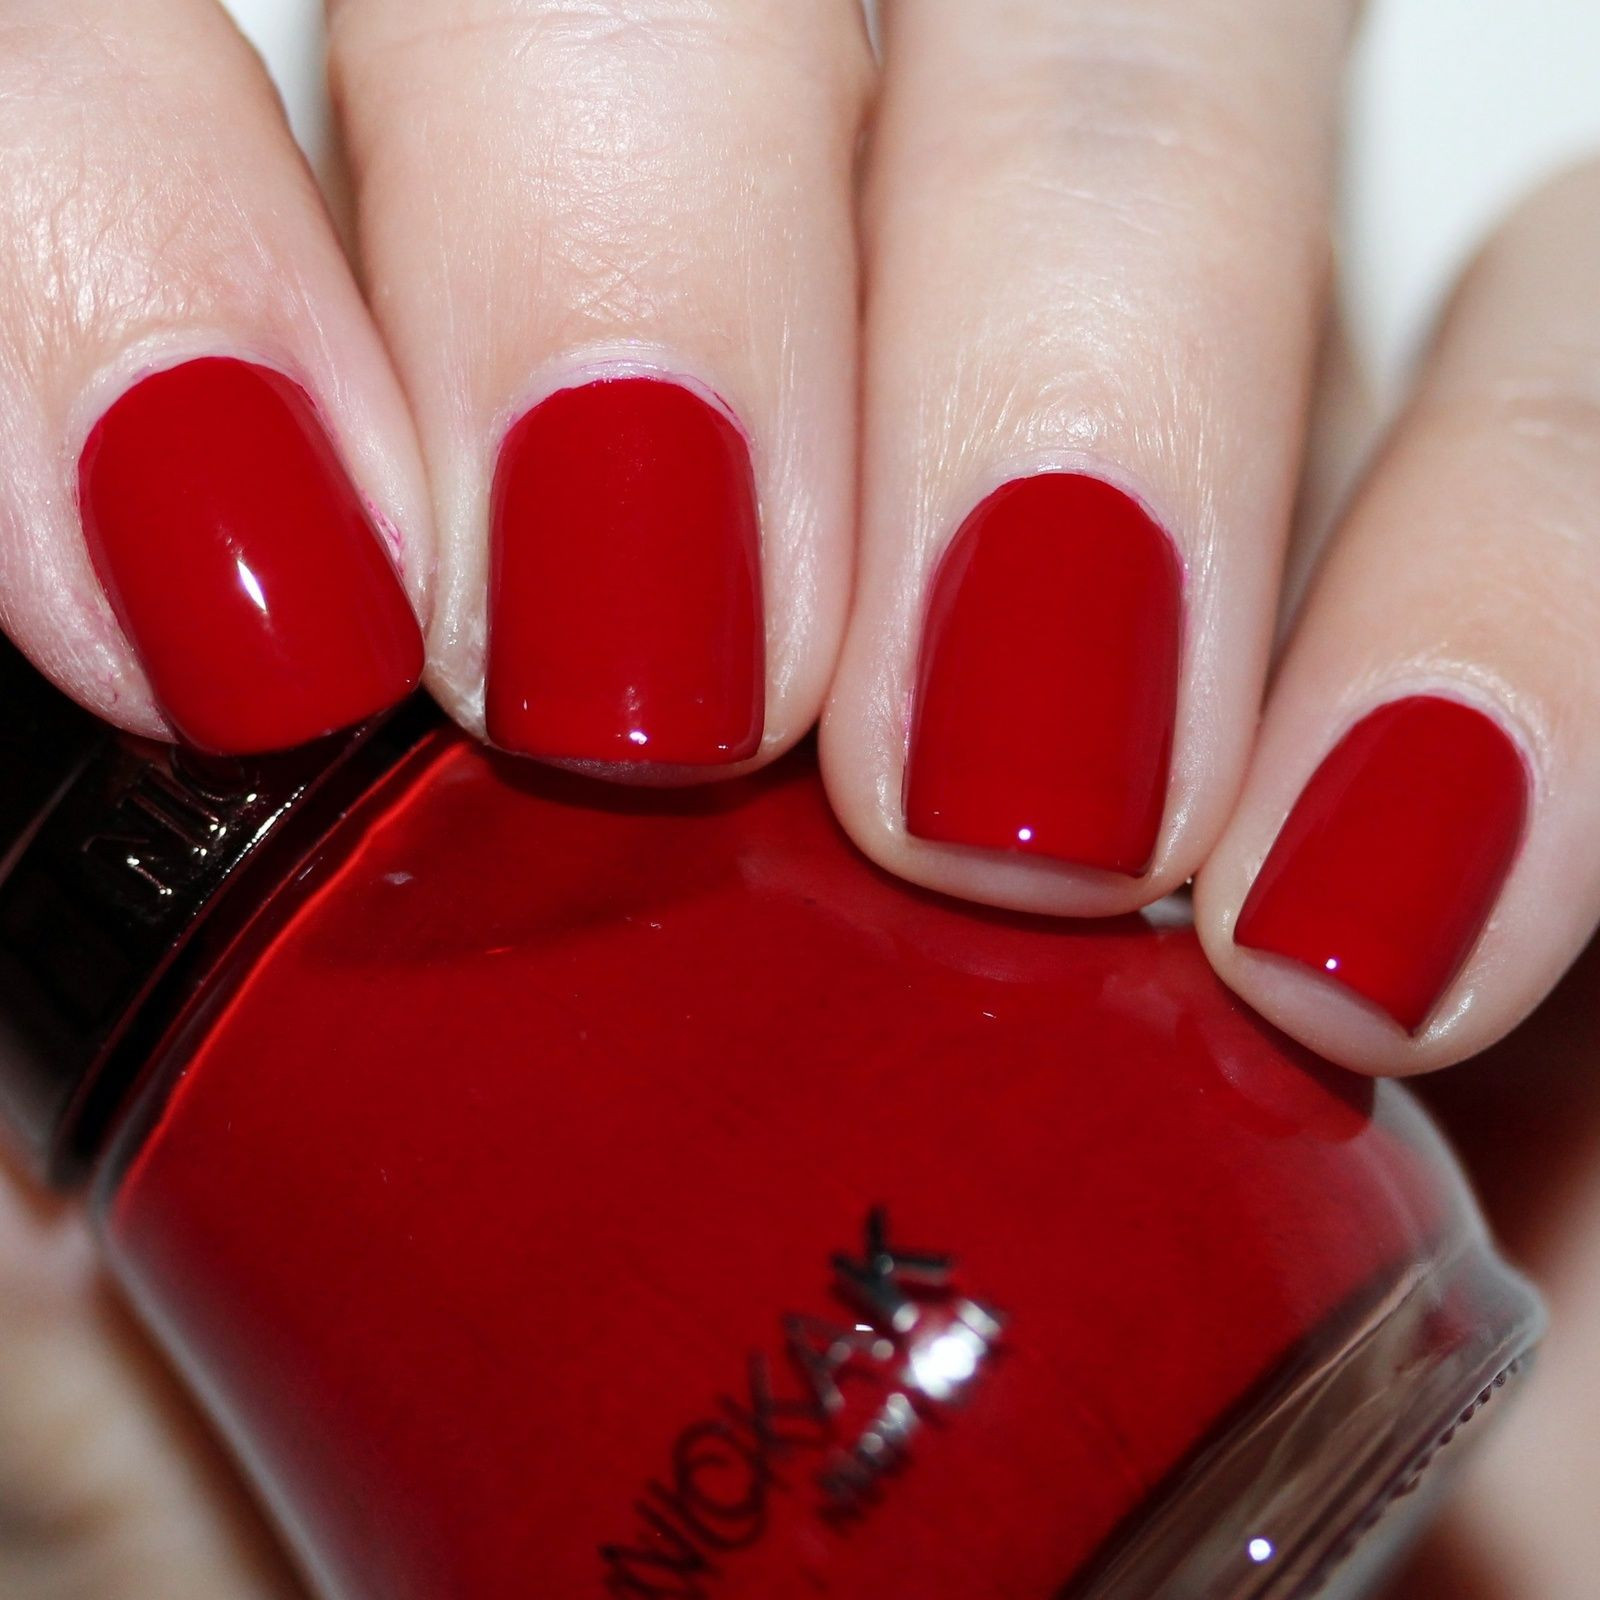 Nicka K NY139 Ripe Apple | Apples, Nail inspo and Nail envy